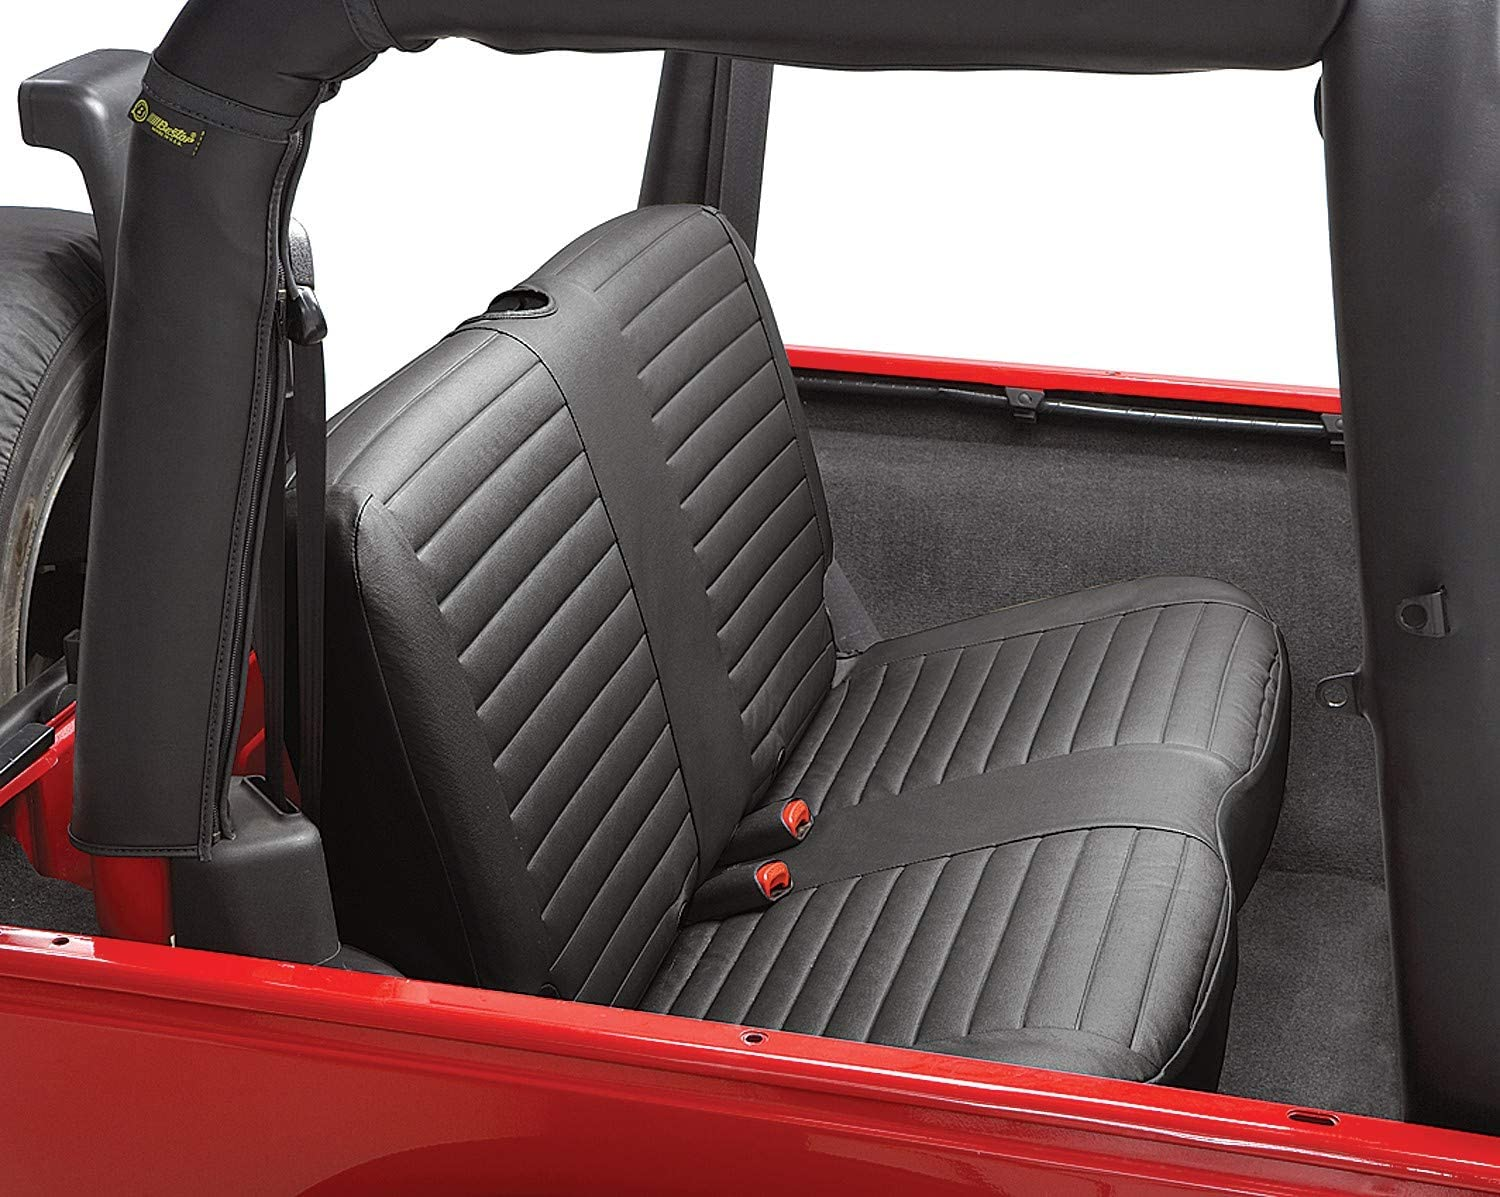 Bestop 2922115 Black Denim Seat Cover for Rear Bench Seat - Jeep 1997-2002 Wrangler; Sold as Individual Seat Cover; Fits Factory Seat